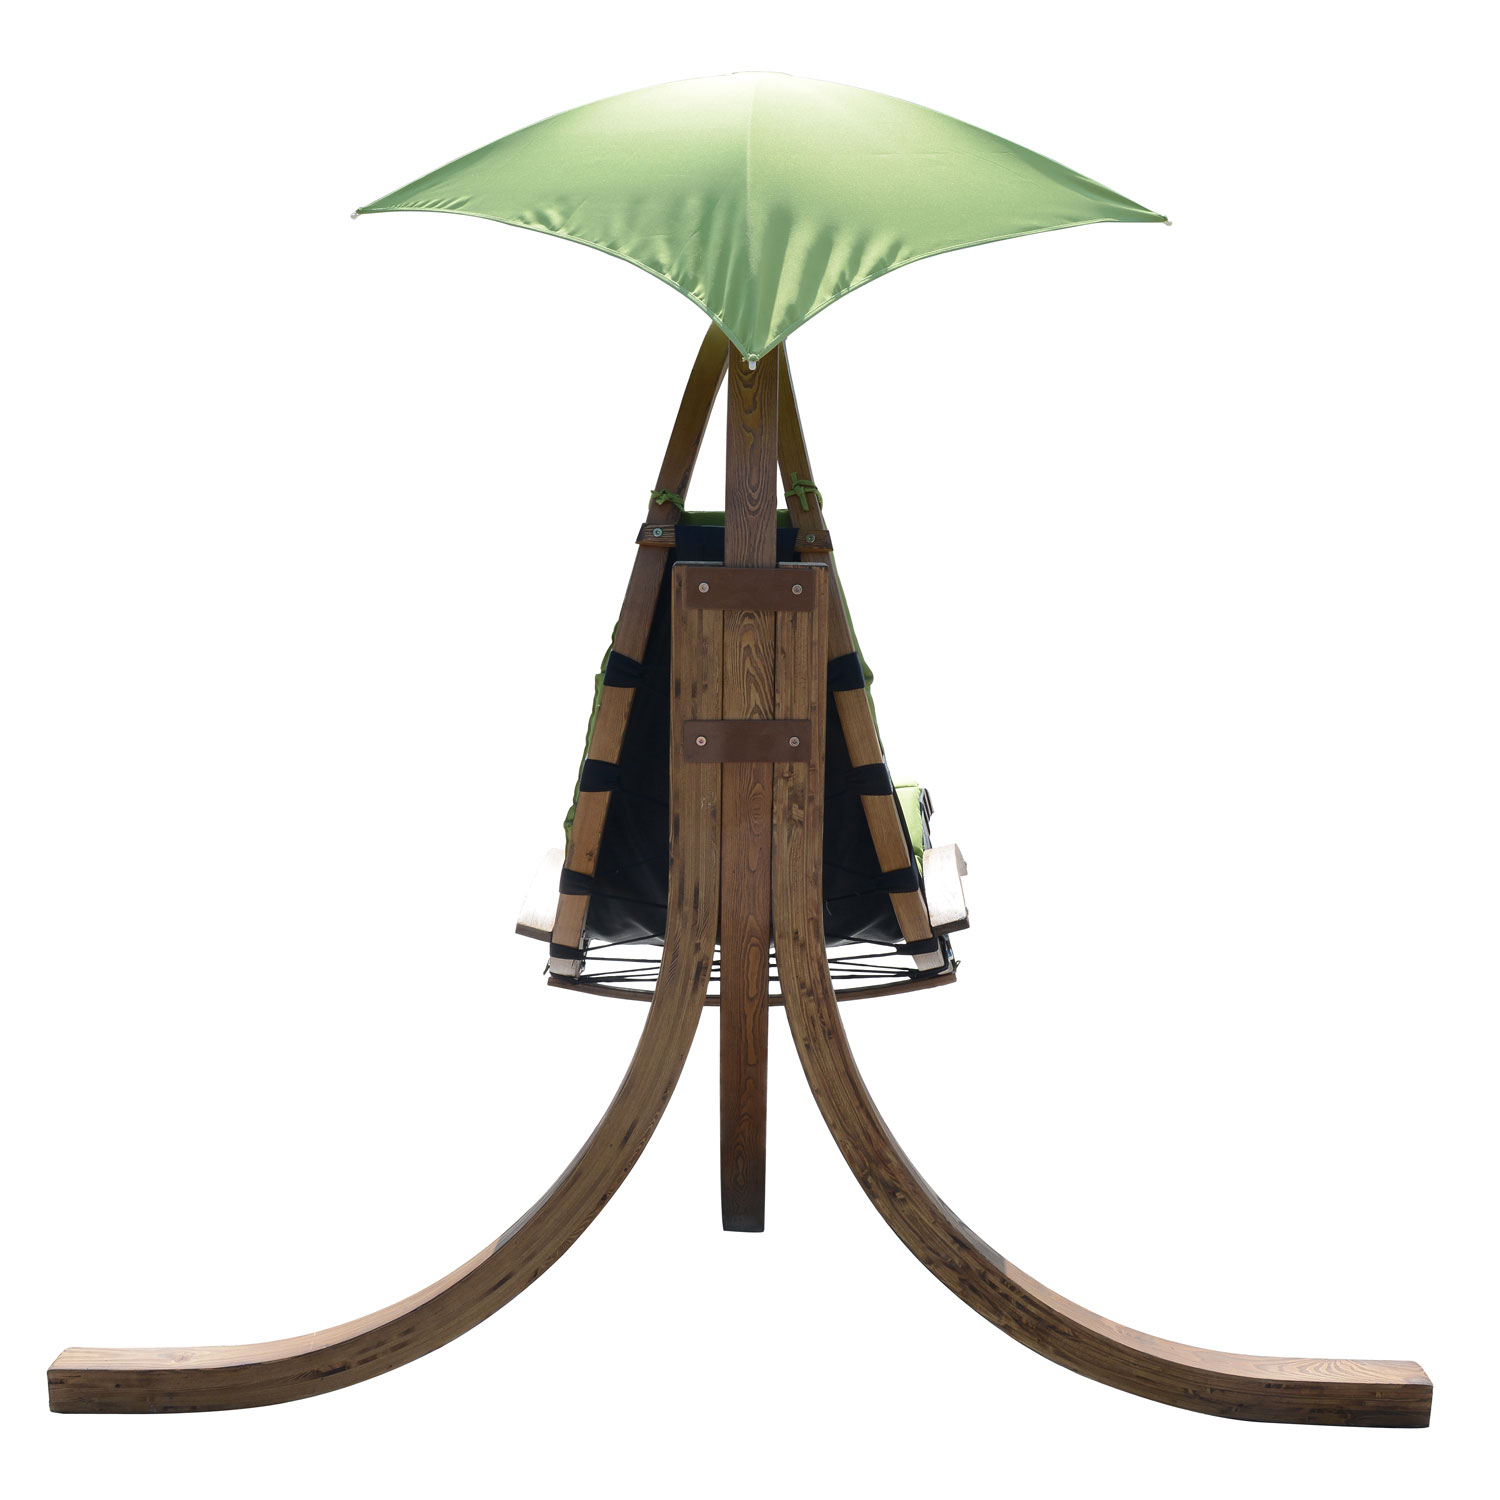 Outsunny Outdoor Hanging Sky Swing Chair w Stand Green